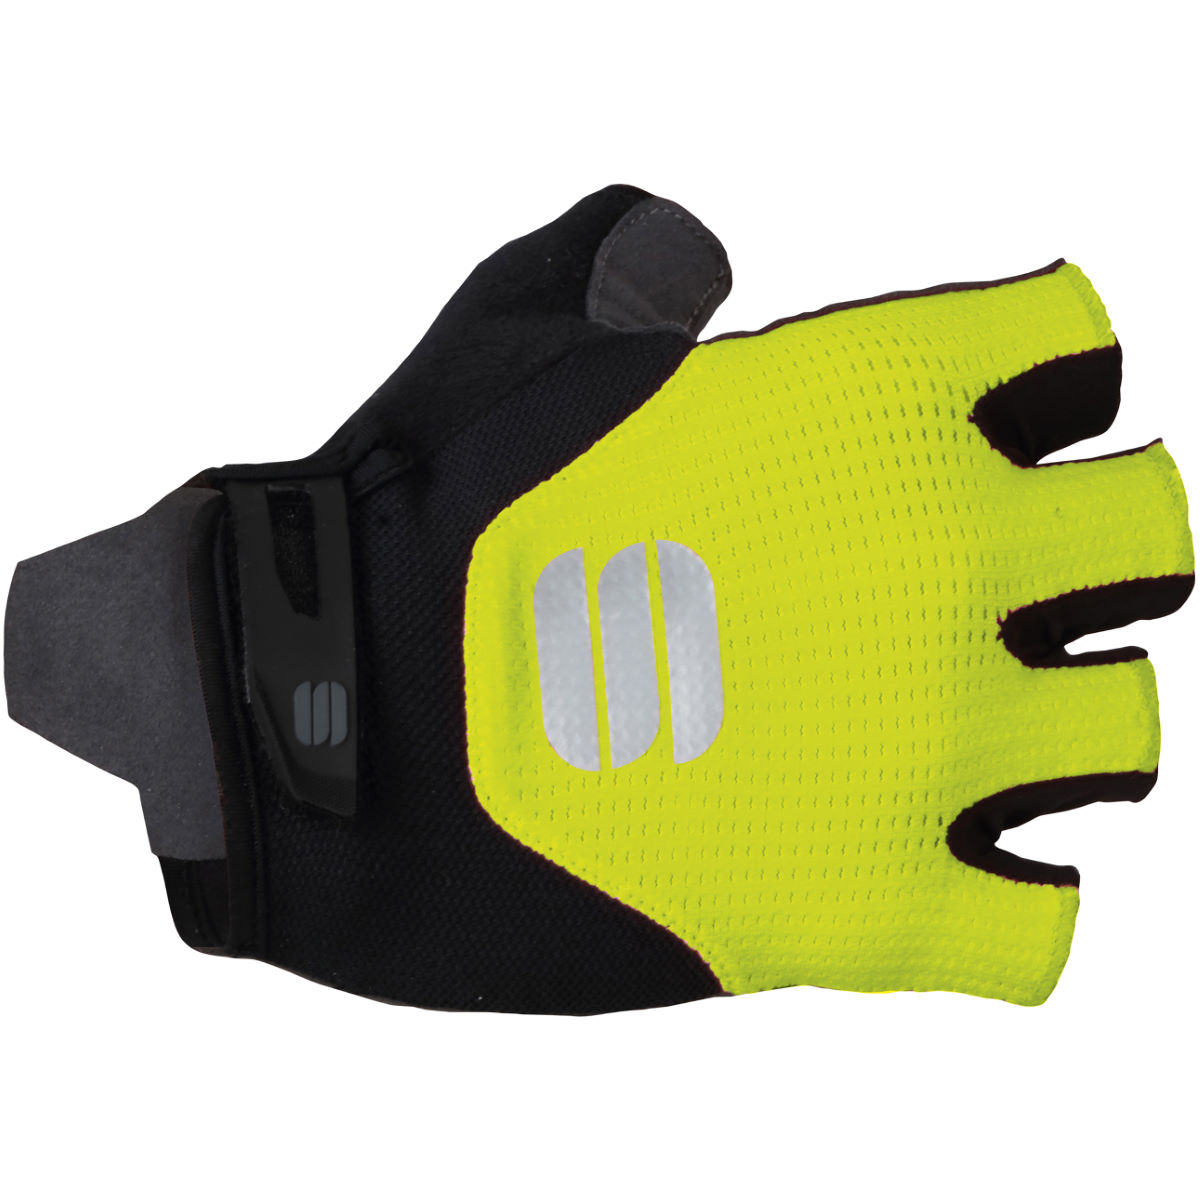 Sportful Neo Cycling Gloves - Xs Black/yellow  Gloves